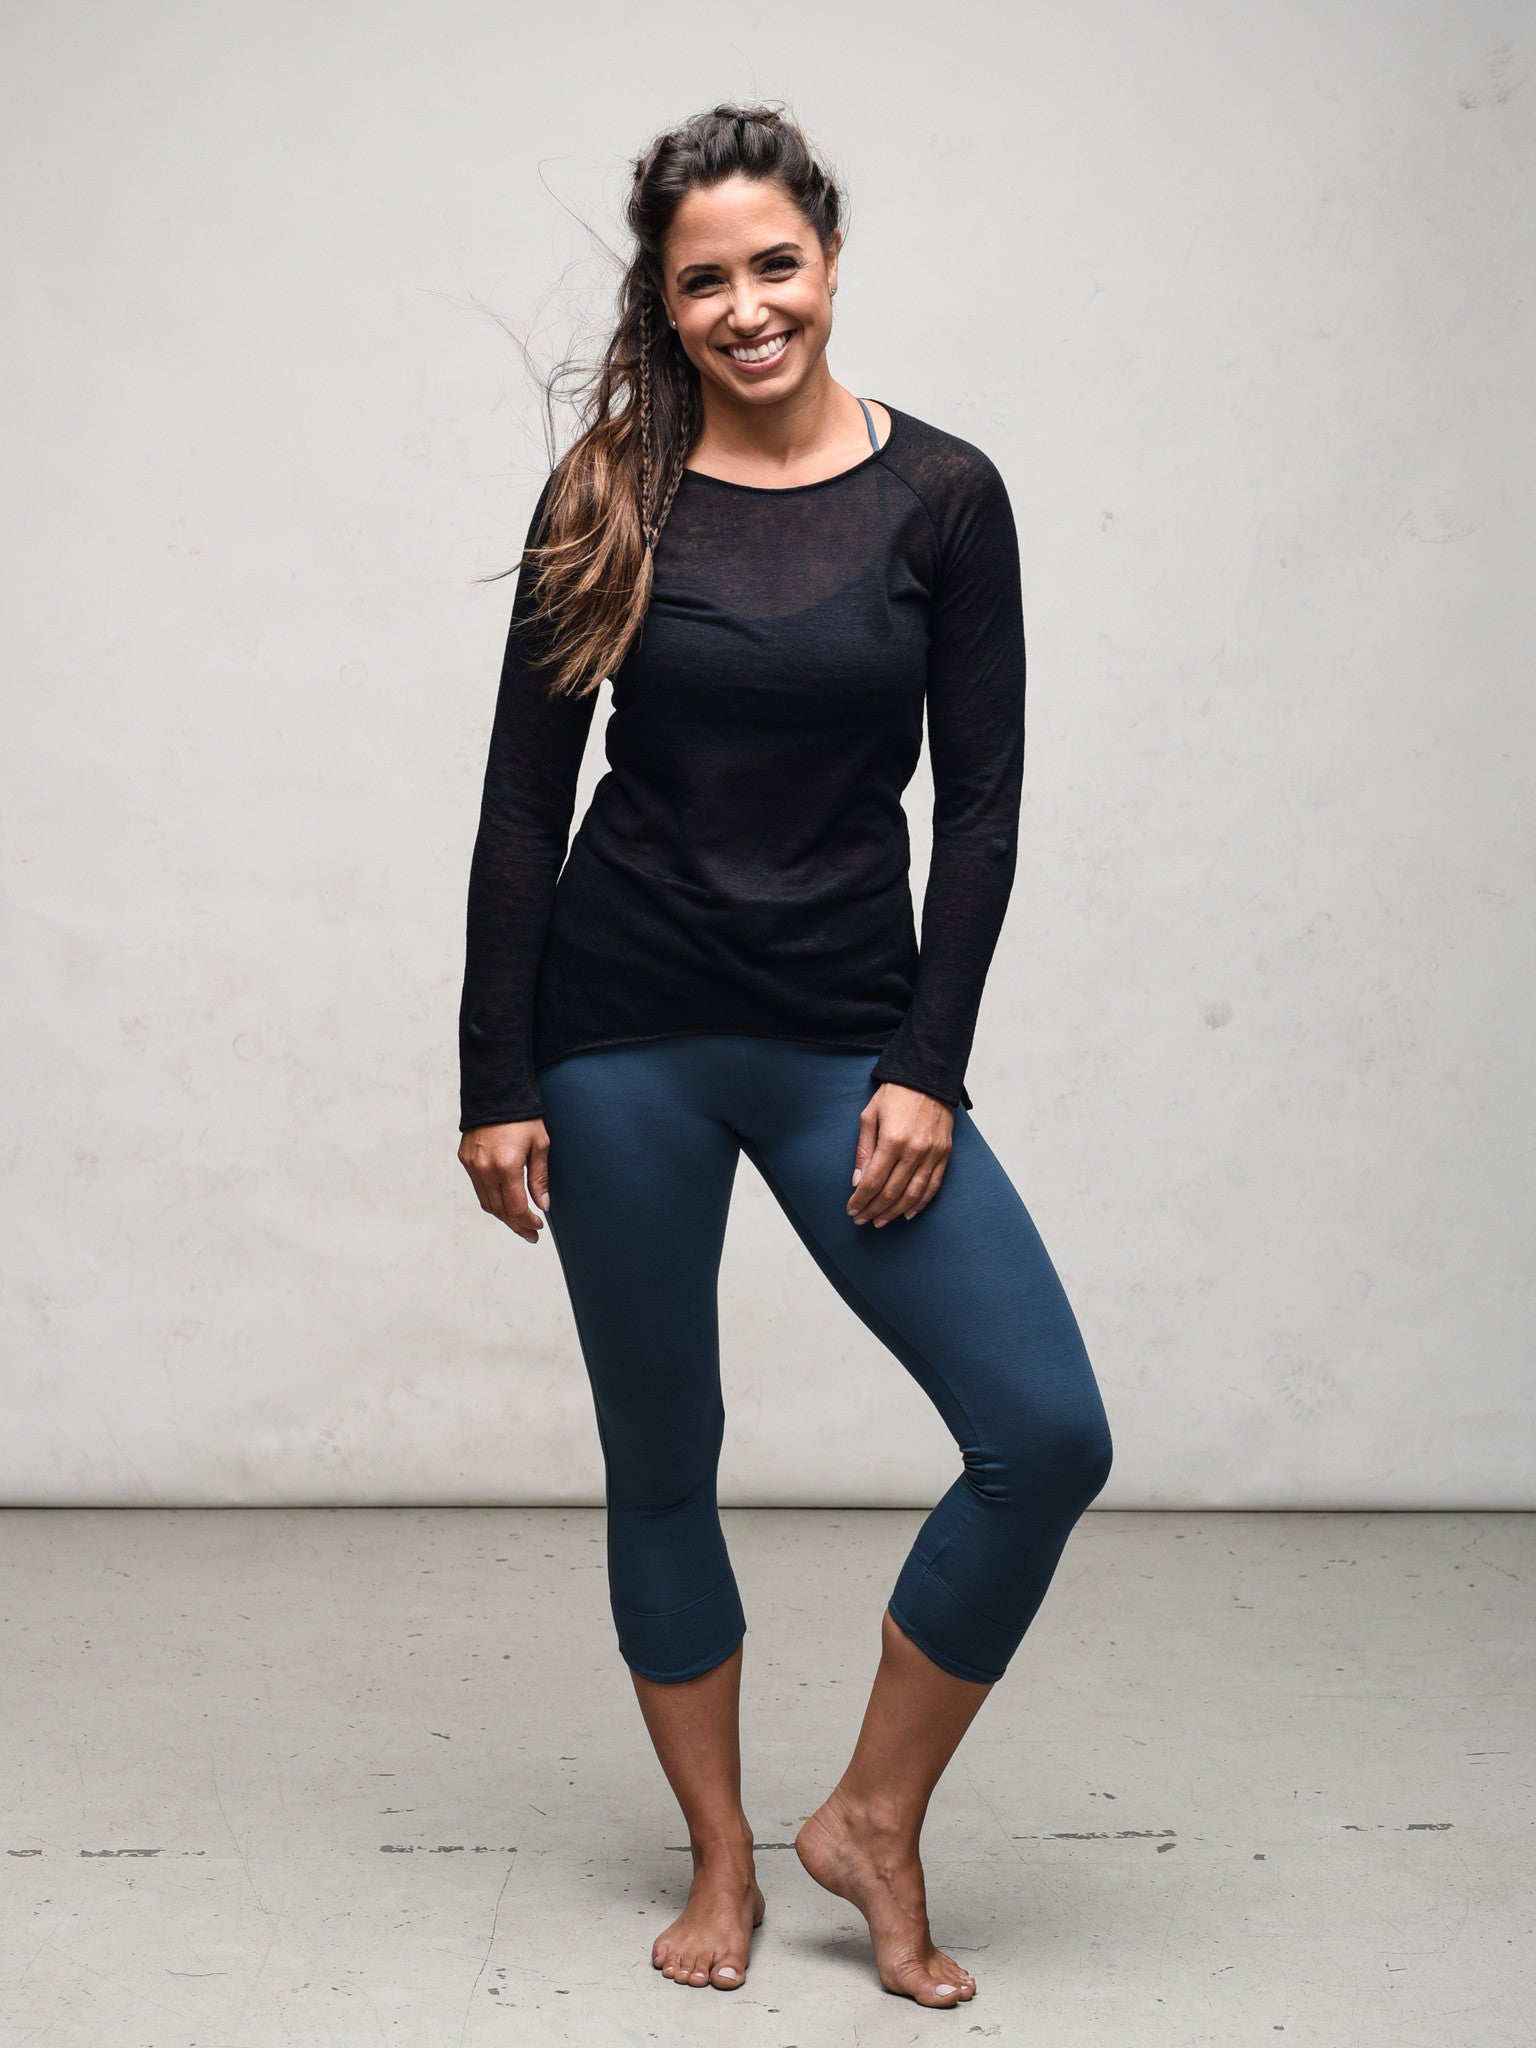 Bamboo jersey yoga capri by Zen Nomad